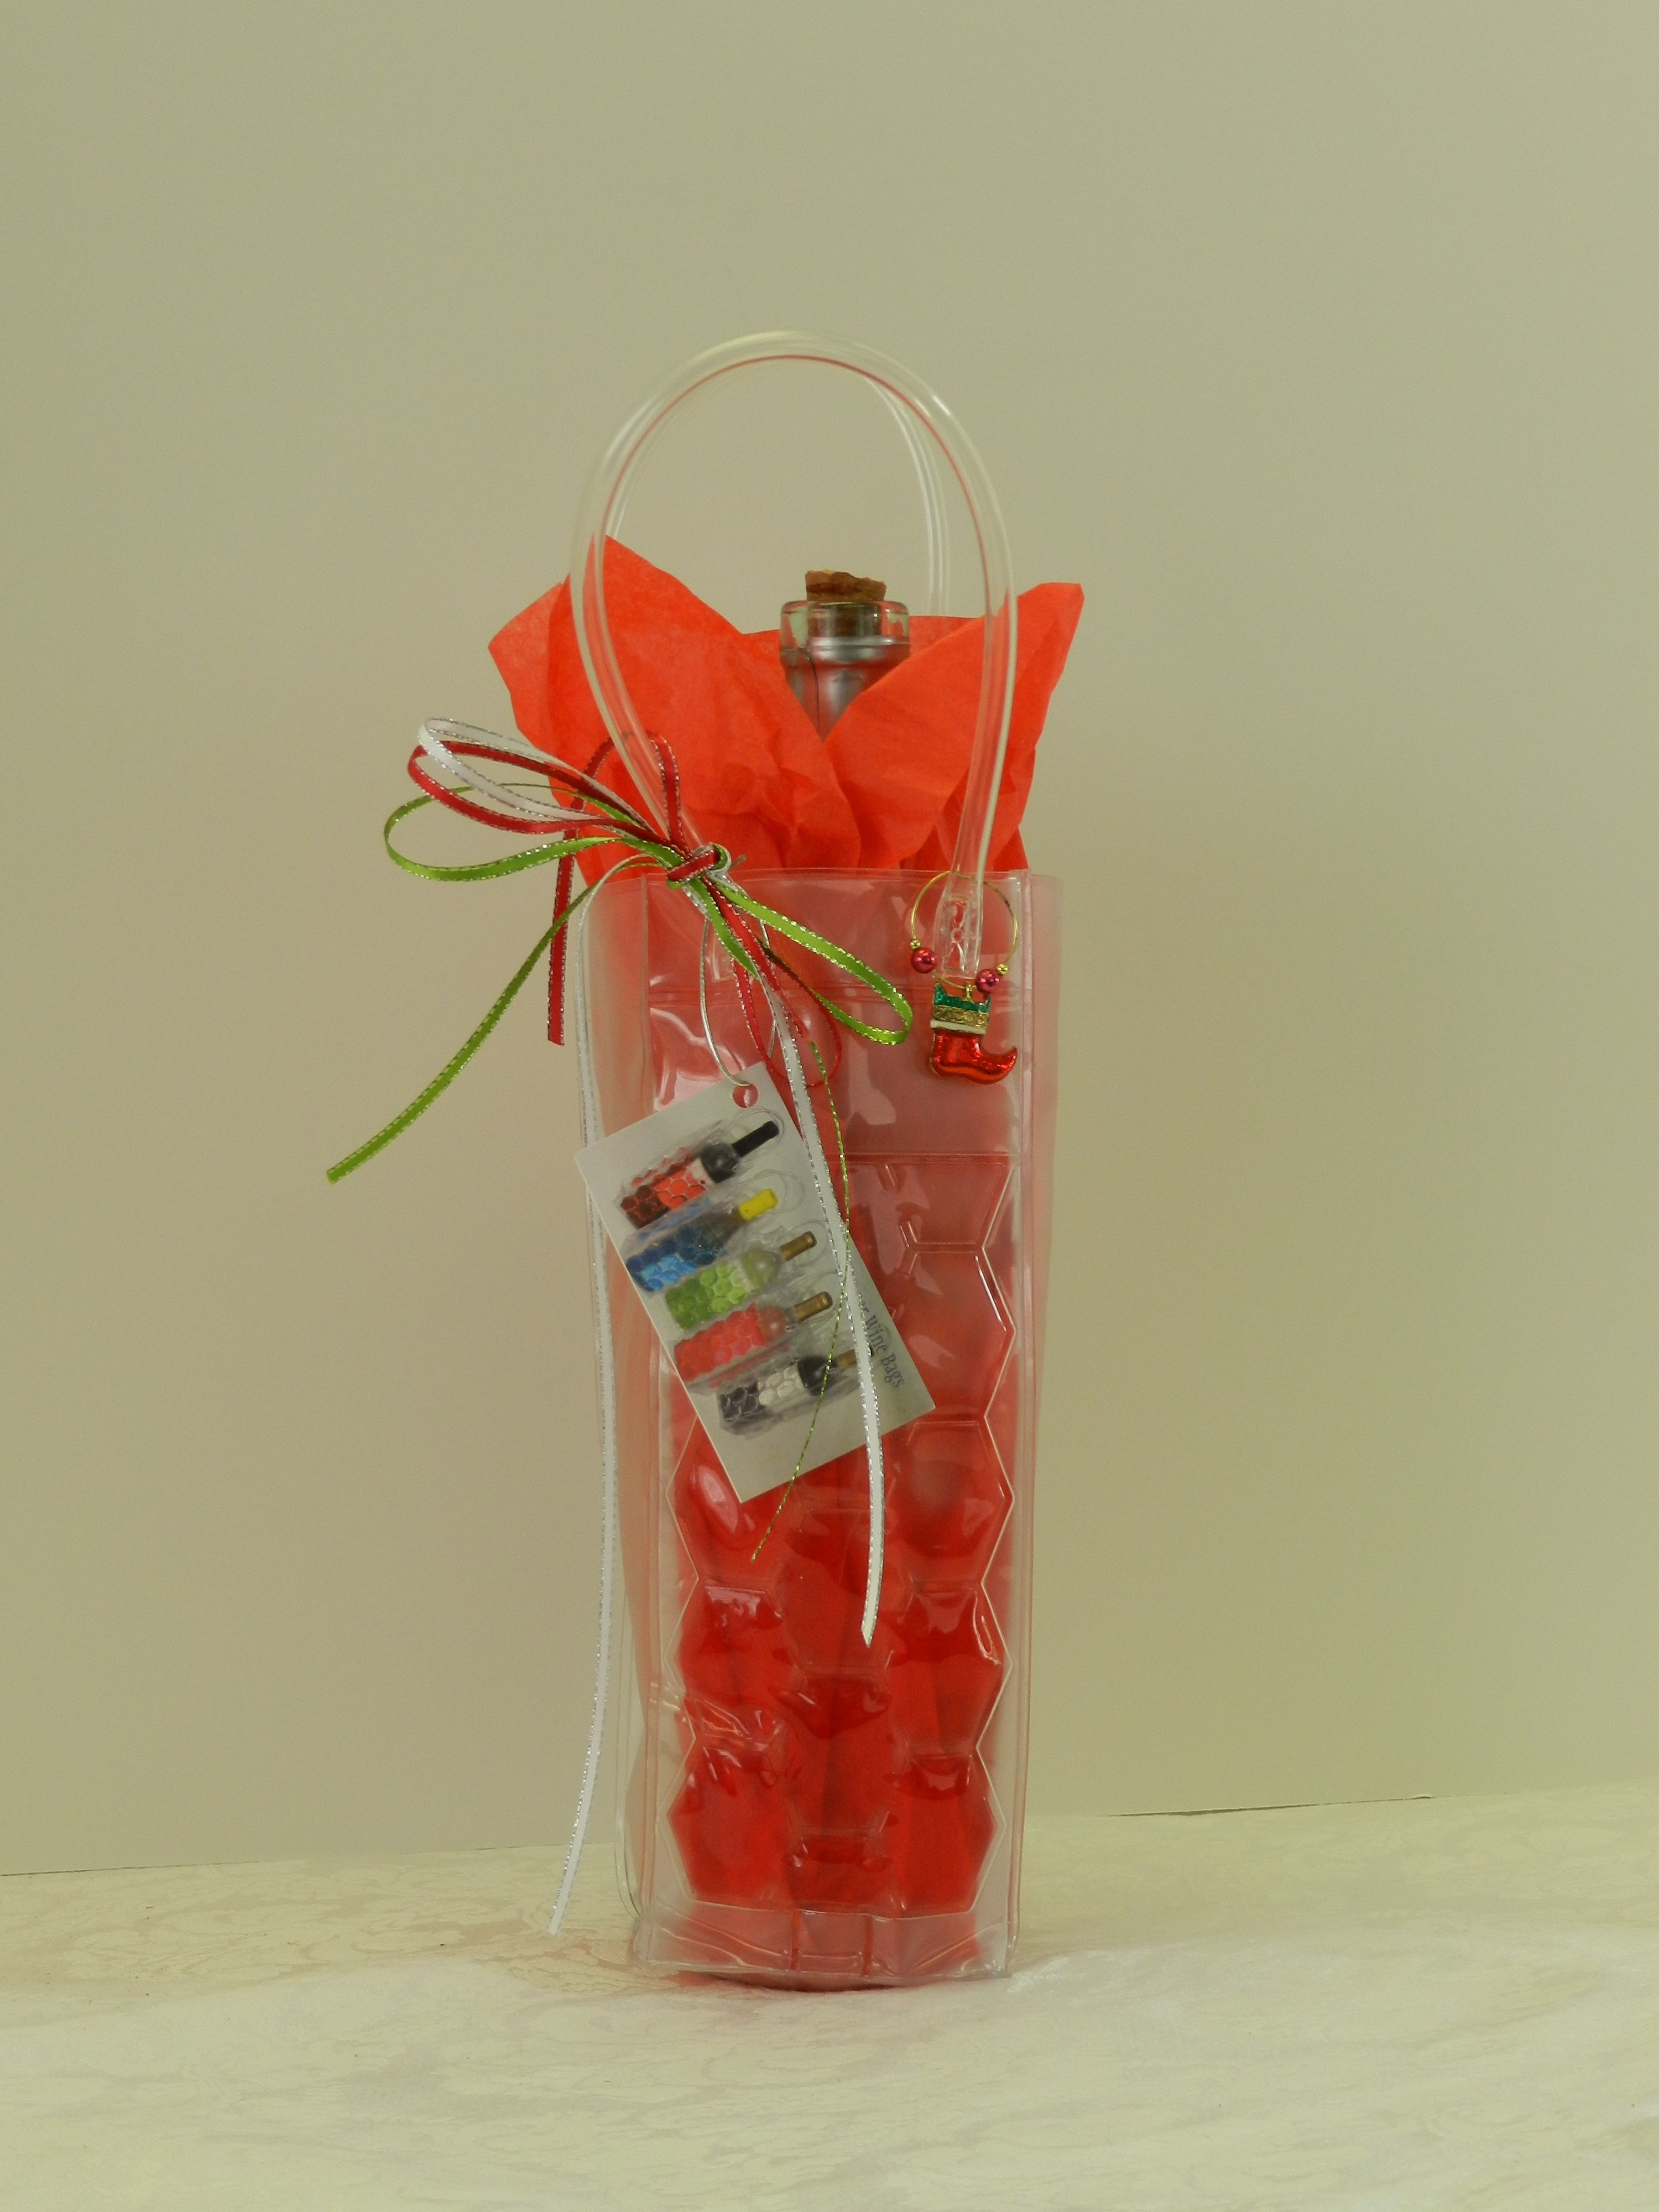 Freezer Wine Bag Red Merry Christmas The Bags Can Be Purchased At Www Statuschic Com Just Add Tissue Paper A Bottle Of Your F Wine Bag Wine Charms Merry